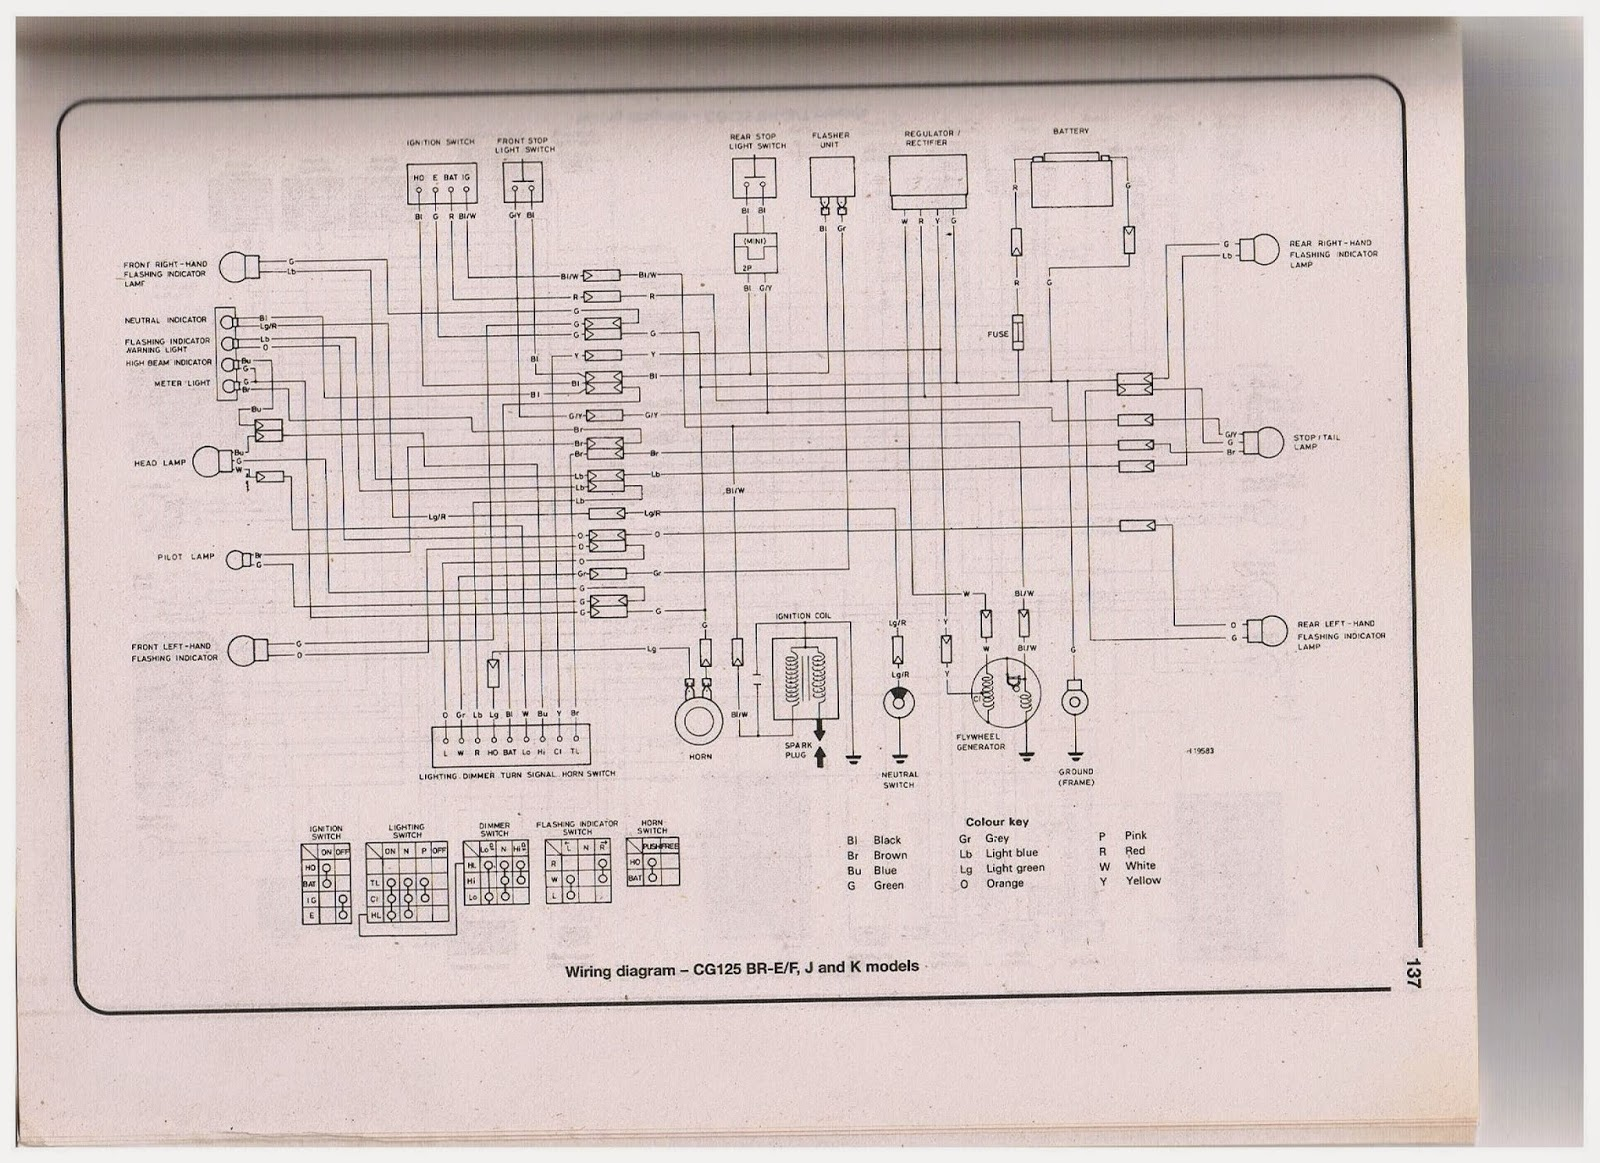 002 honda cg 125 owner blog honda cg 125 wiring diagrams and kokusan denki cdi wiring diagram at aneh.co